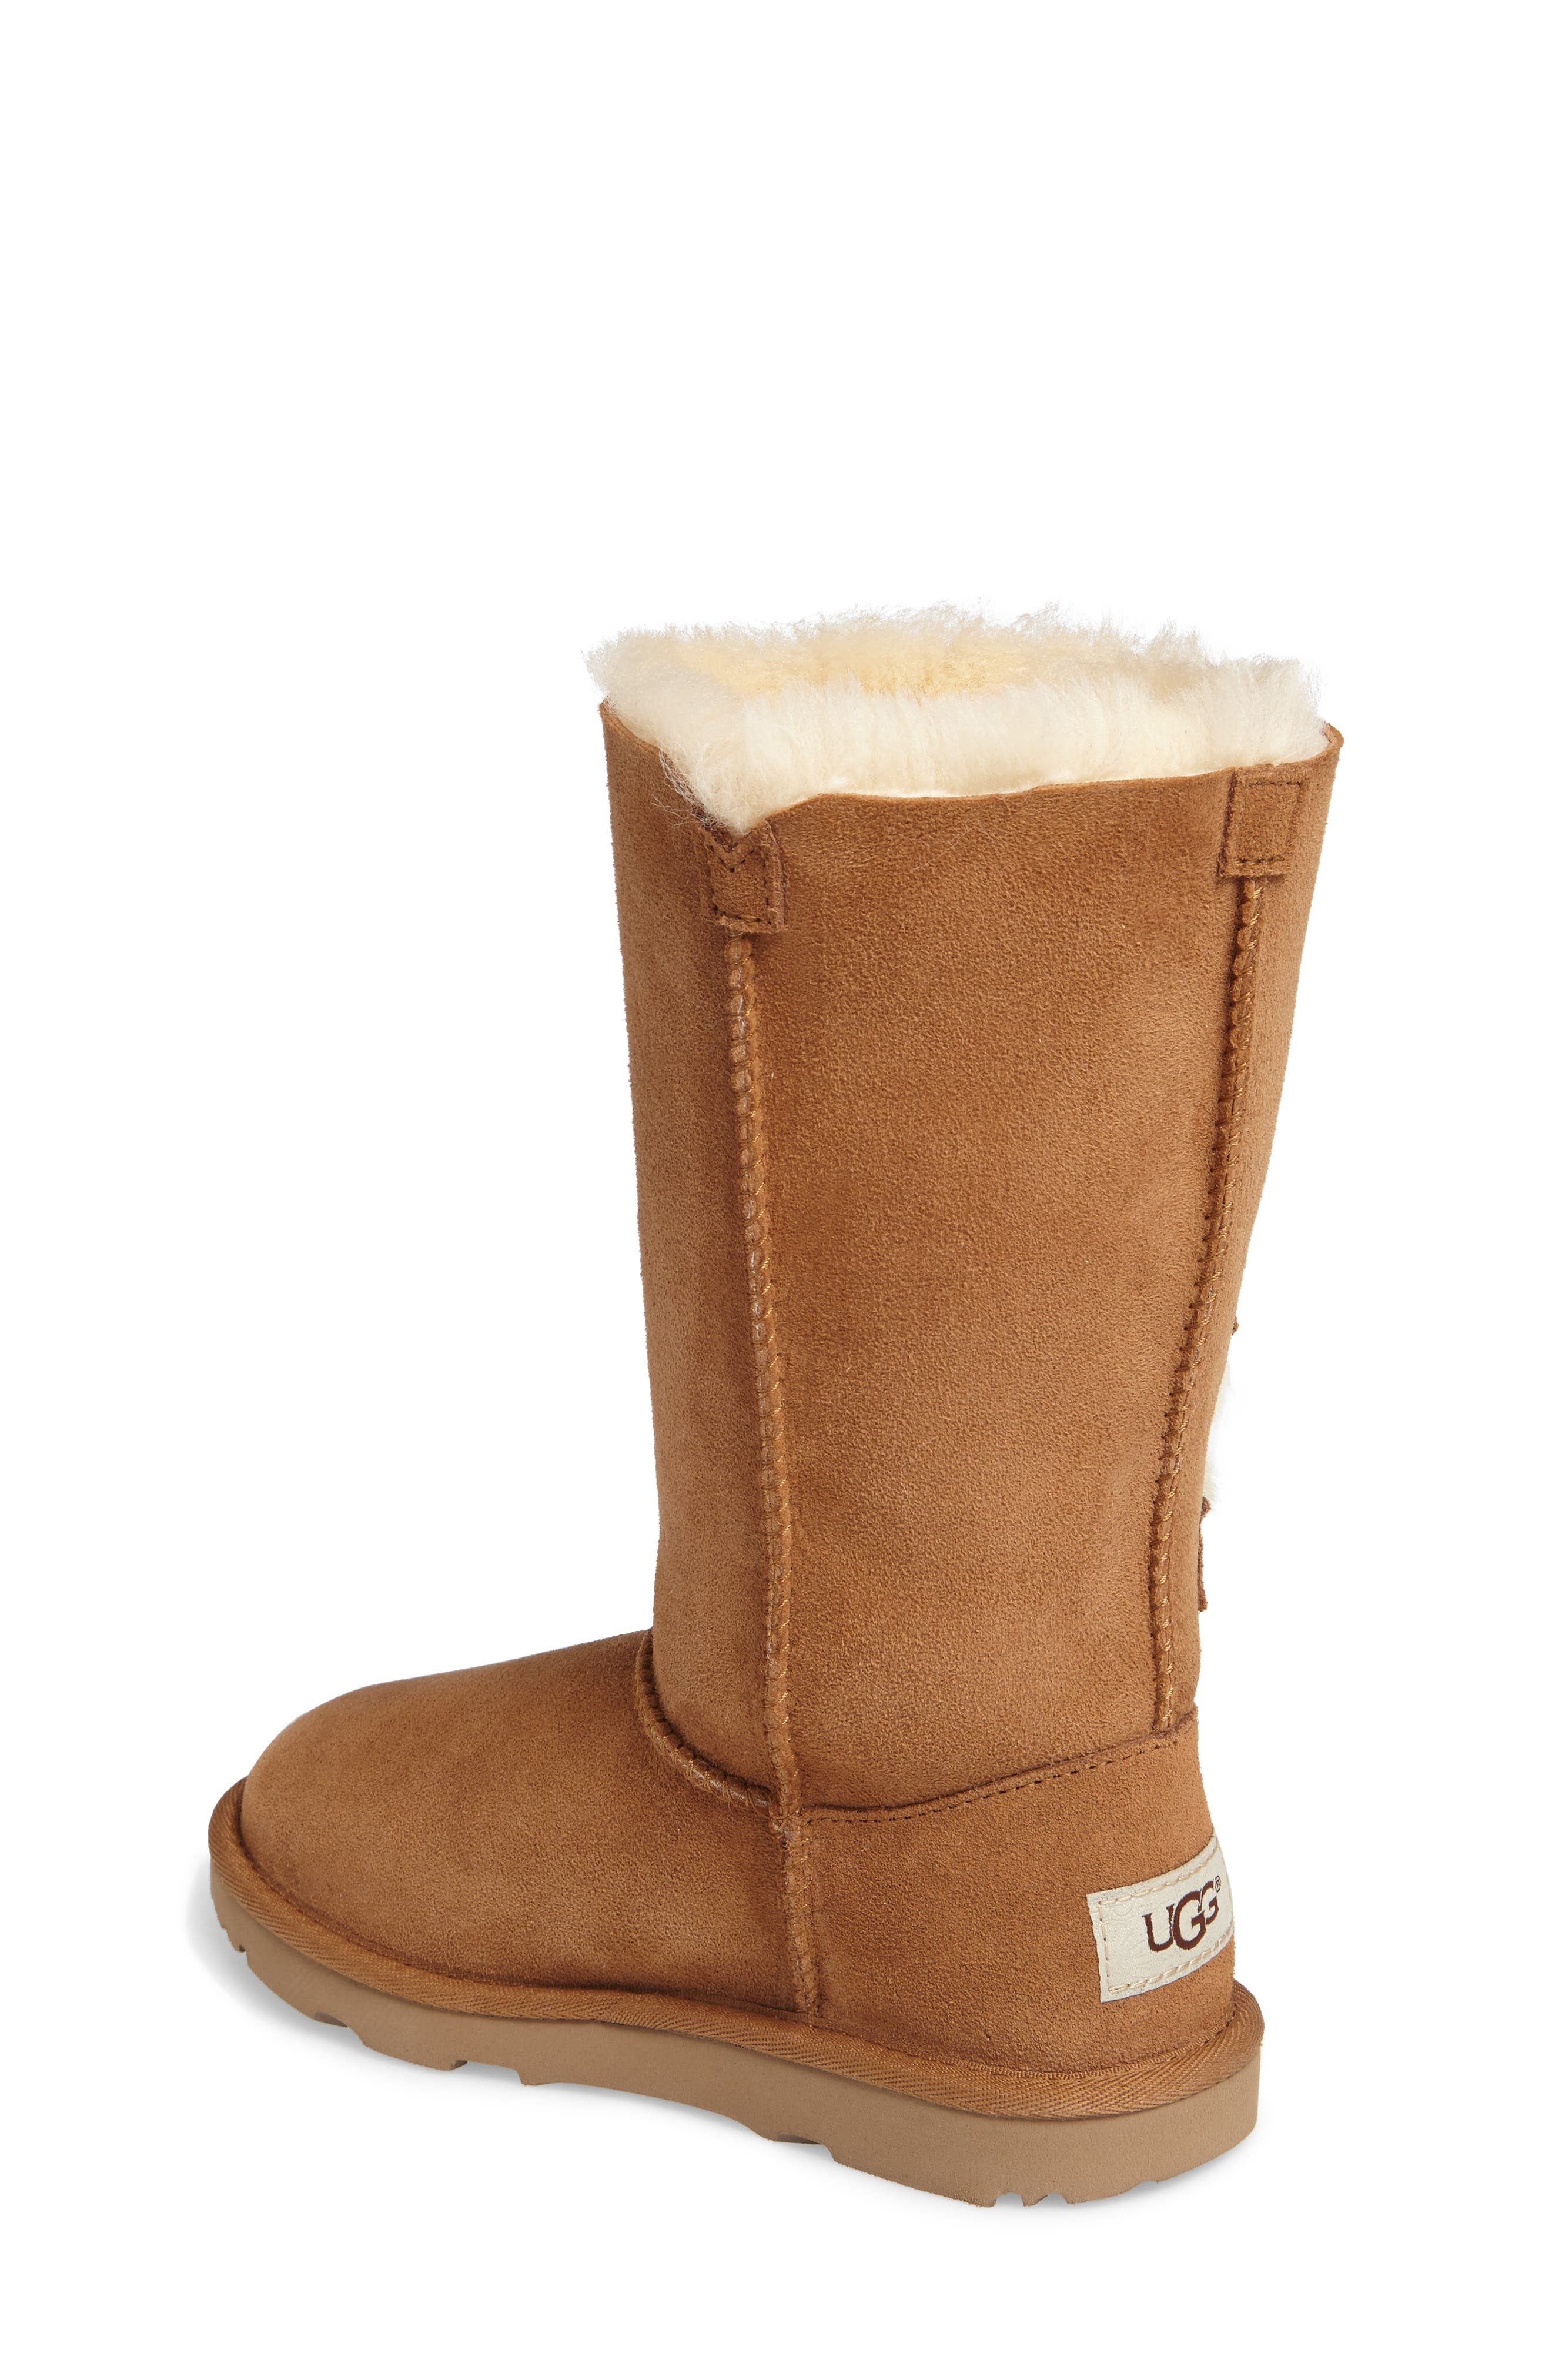 5b76661d9dbb Big Girls' UGG® Shoes (Sizes 3.5-7) | Nordstrom